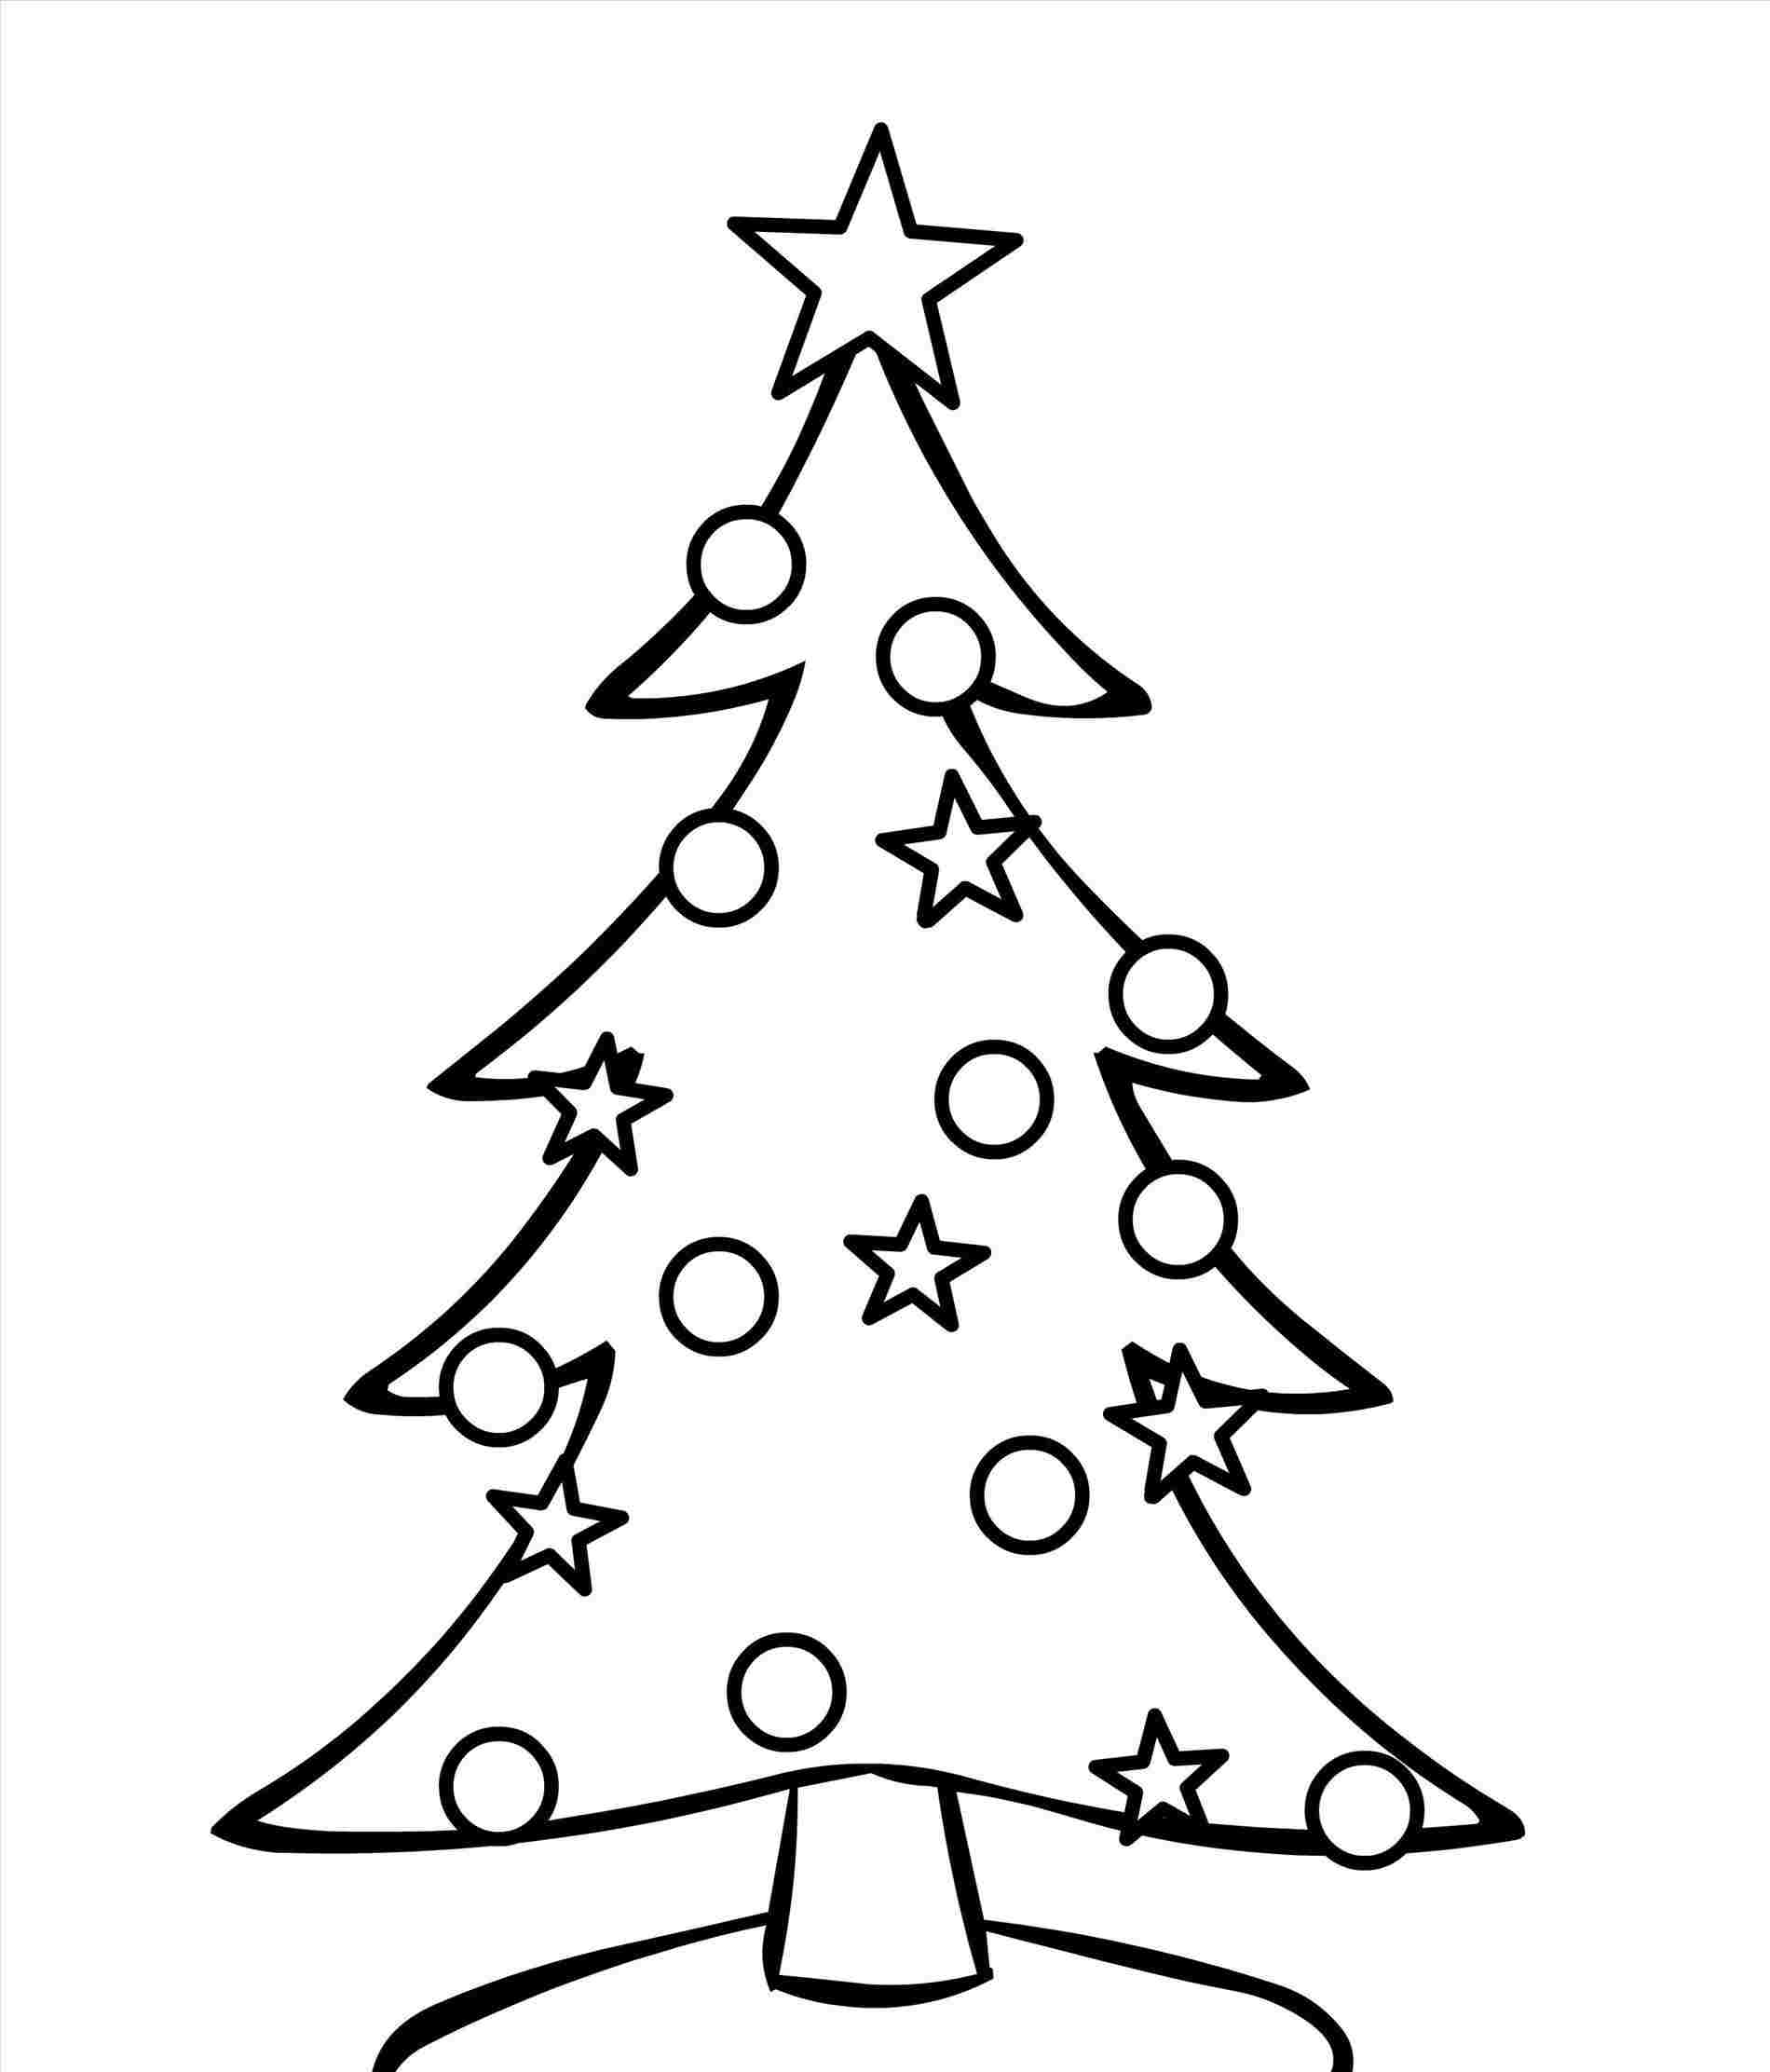 outline of a tree tree outline image free download on clipartmag a of tree outline